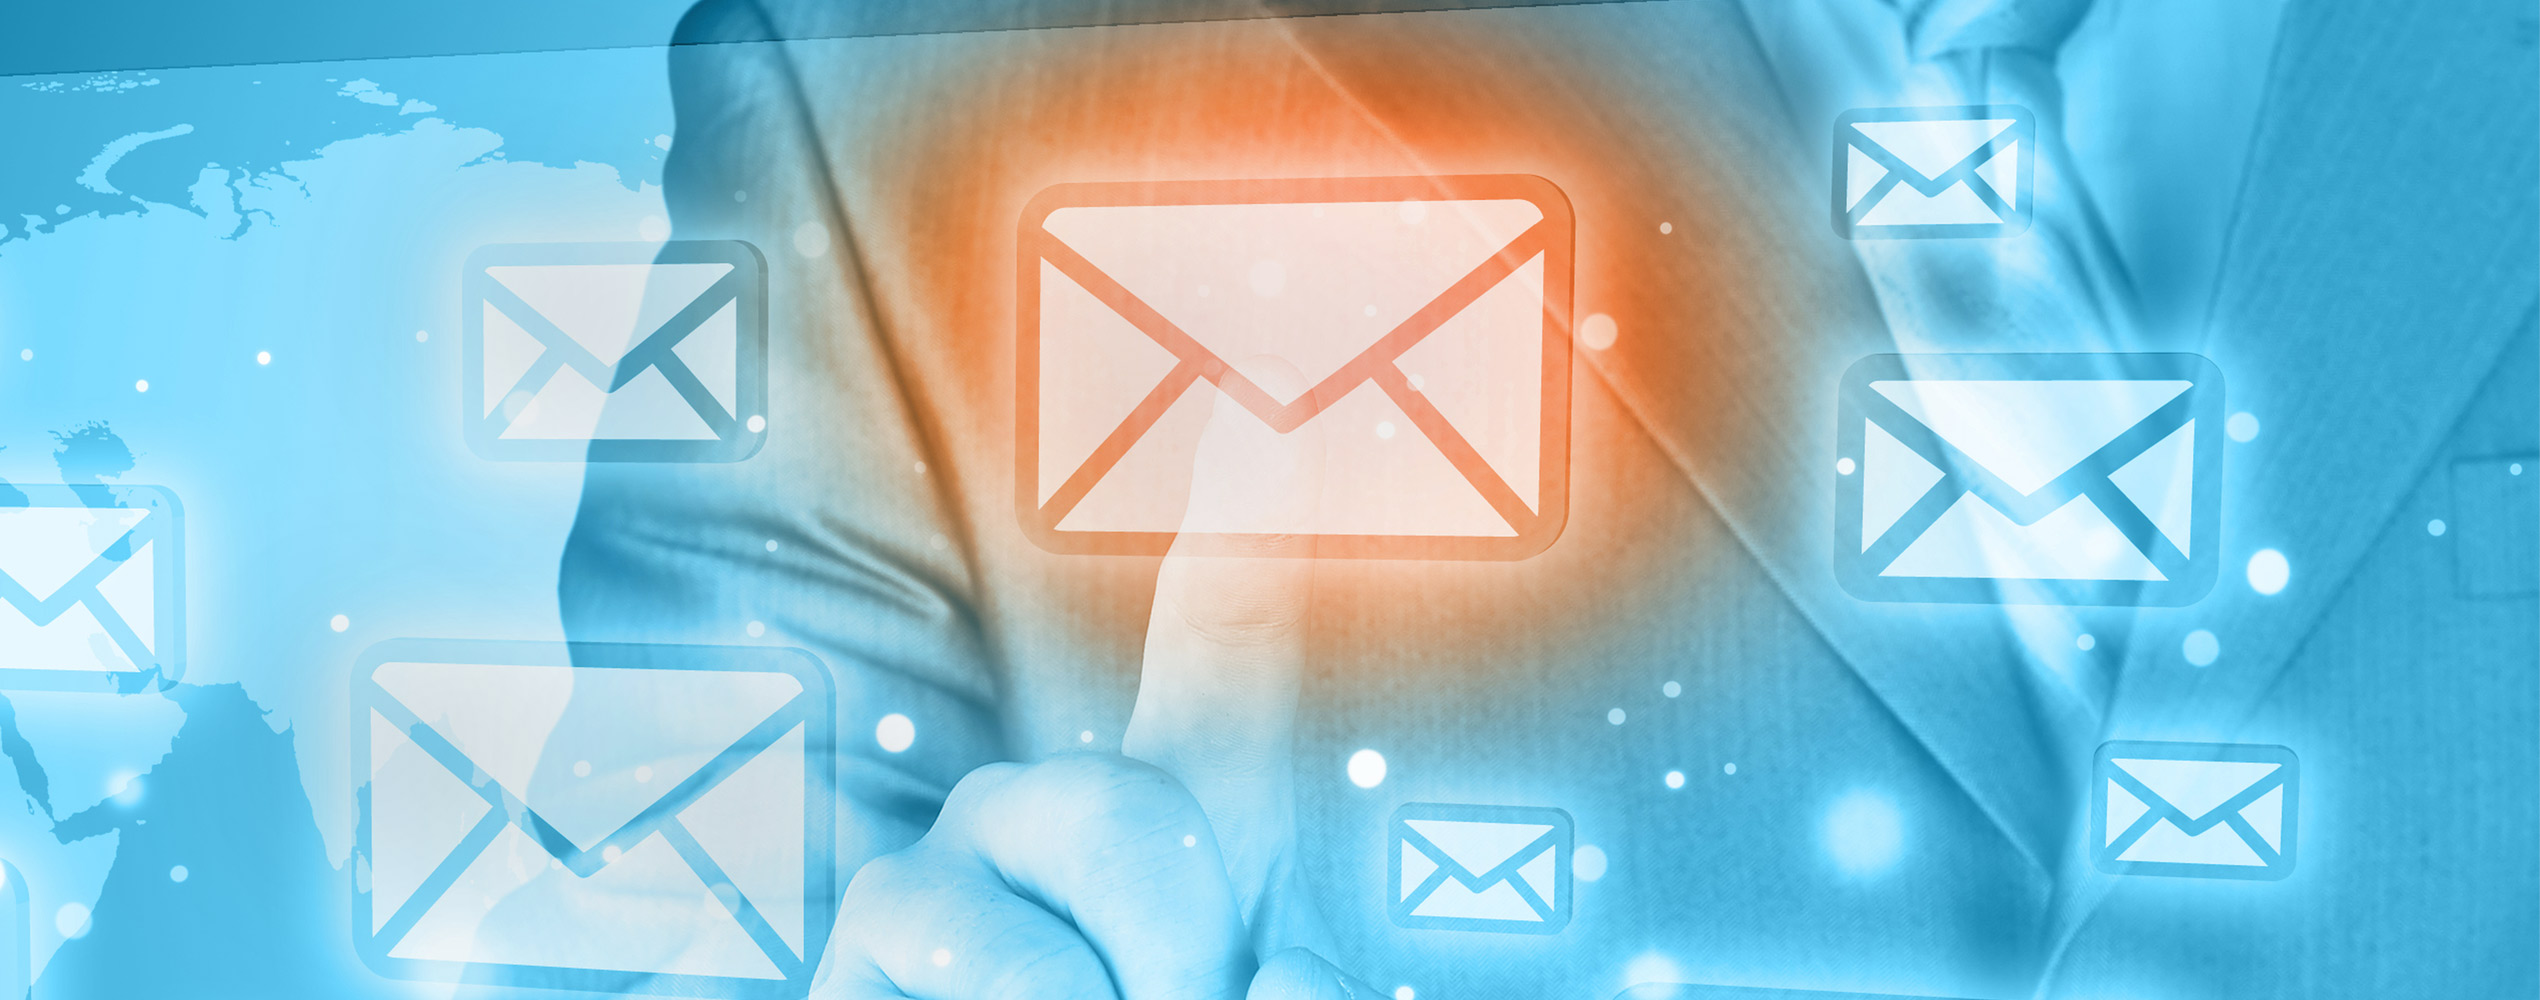 Digital Mail - shutterstock 170052380